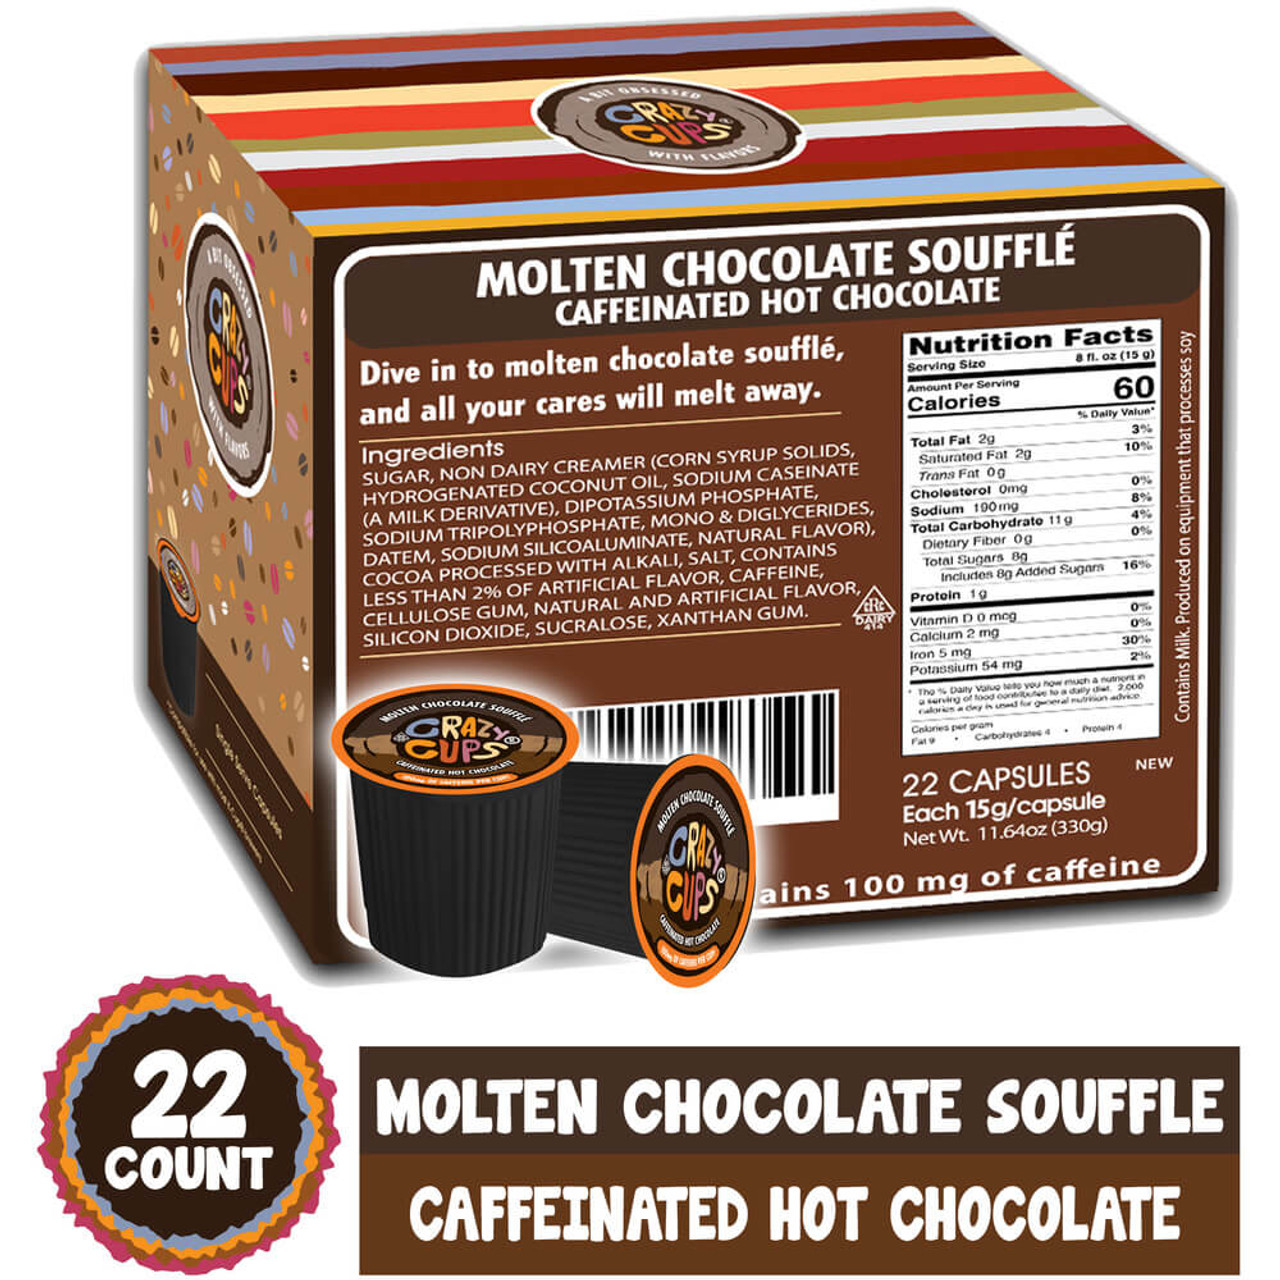 Molten Chocolate Souffle Caffeinated Hot Chocolate by Crazy Cups